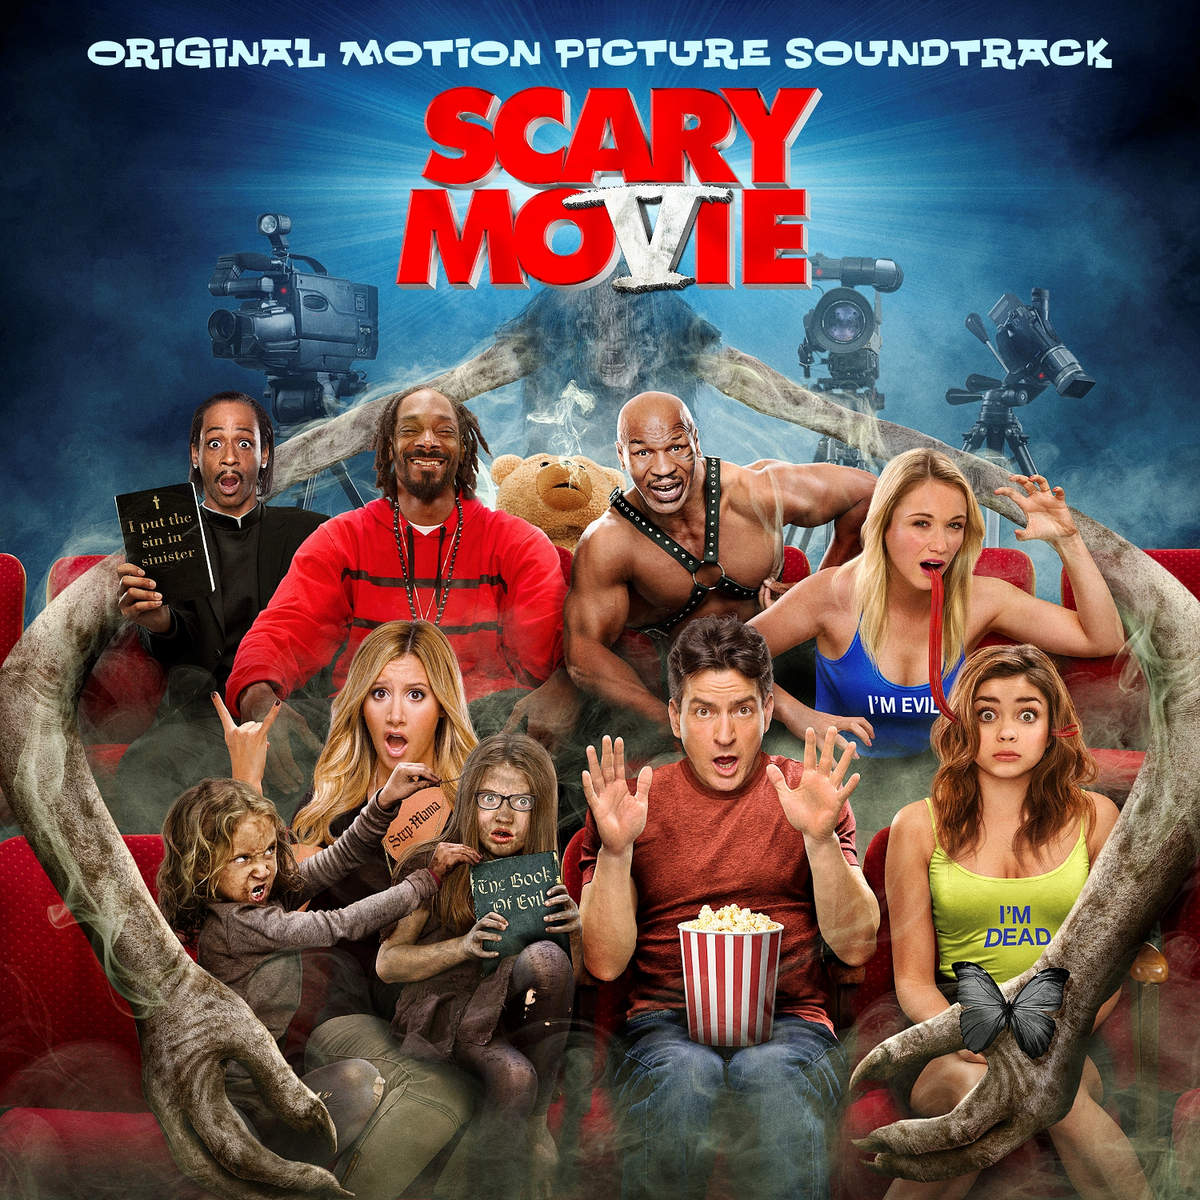 scary movie 5 original motion picture soundtrack